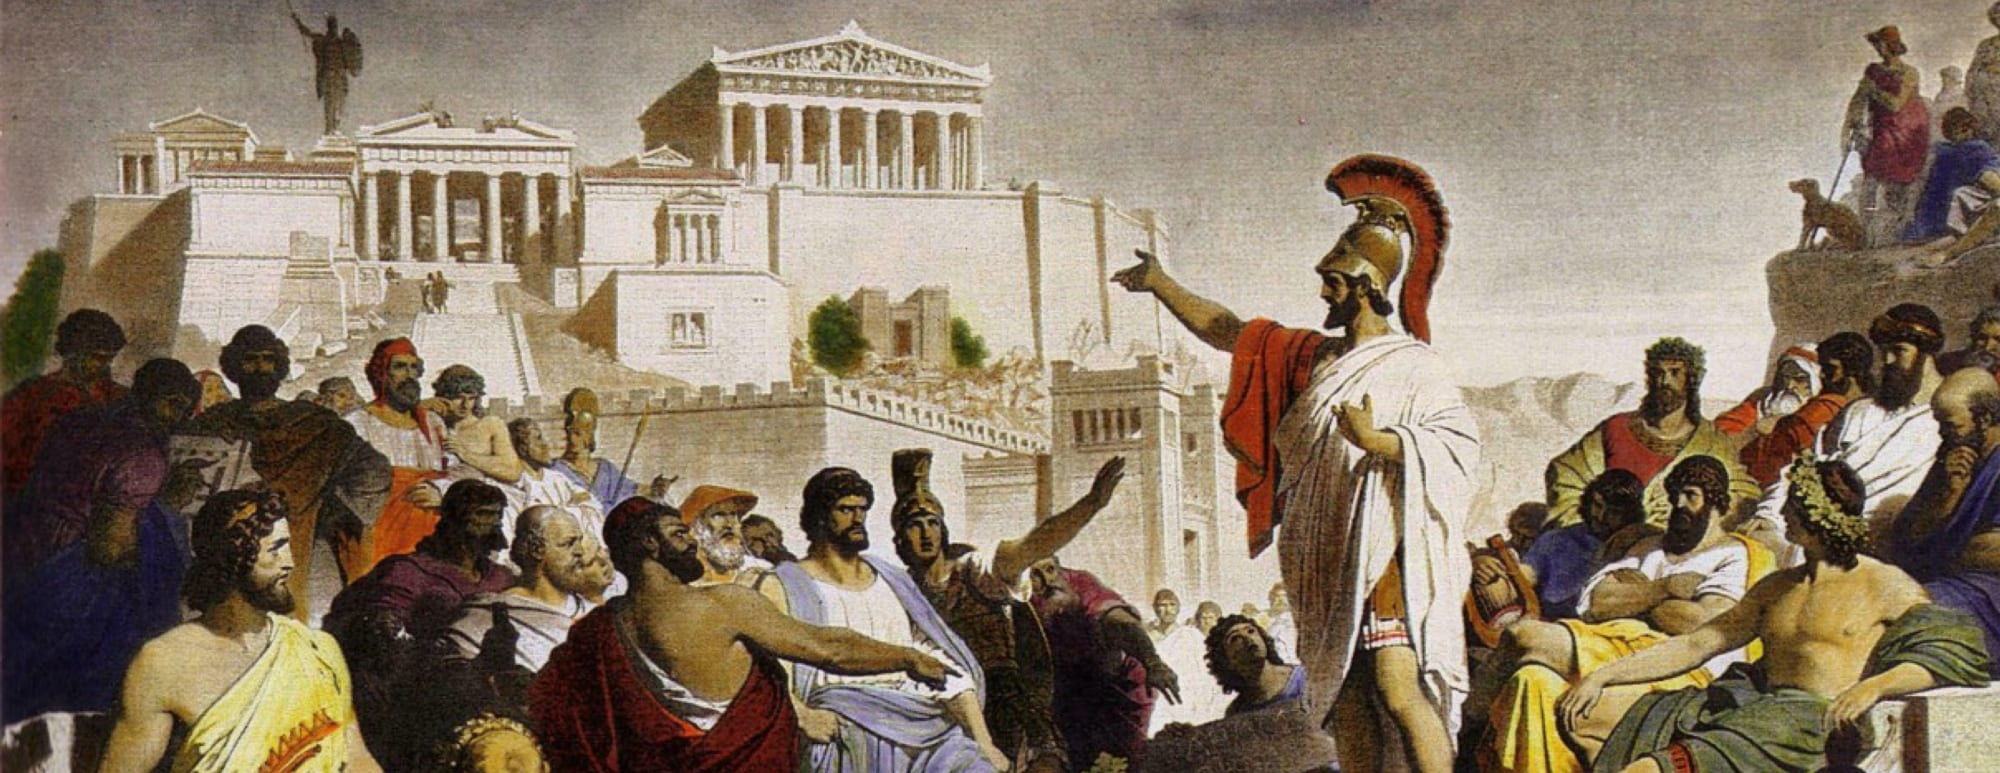 Image Pericles' funeral oration [Wikimedia]